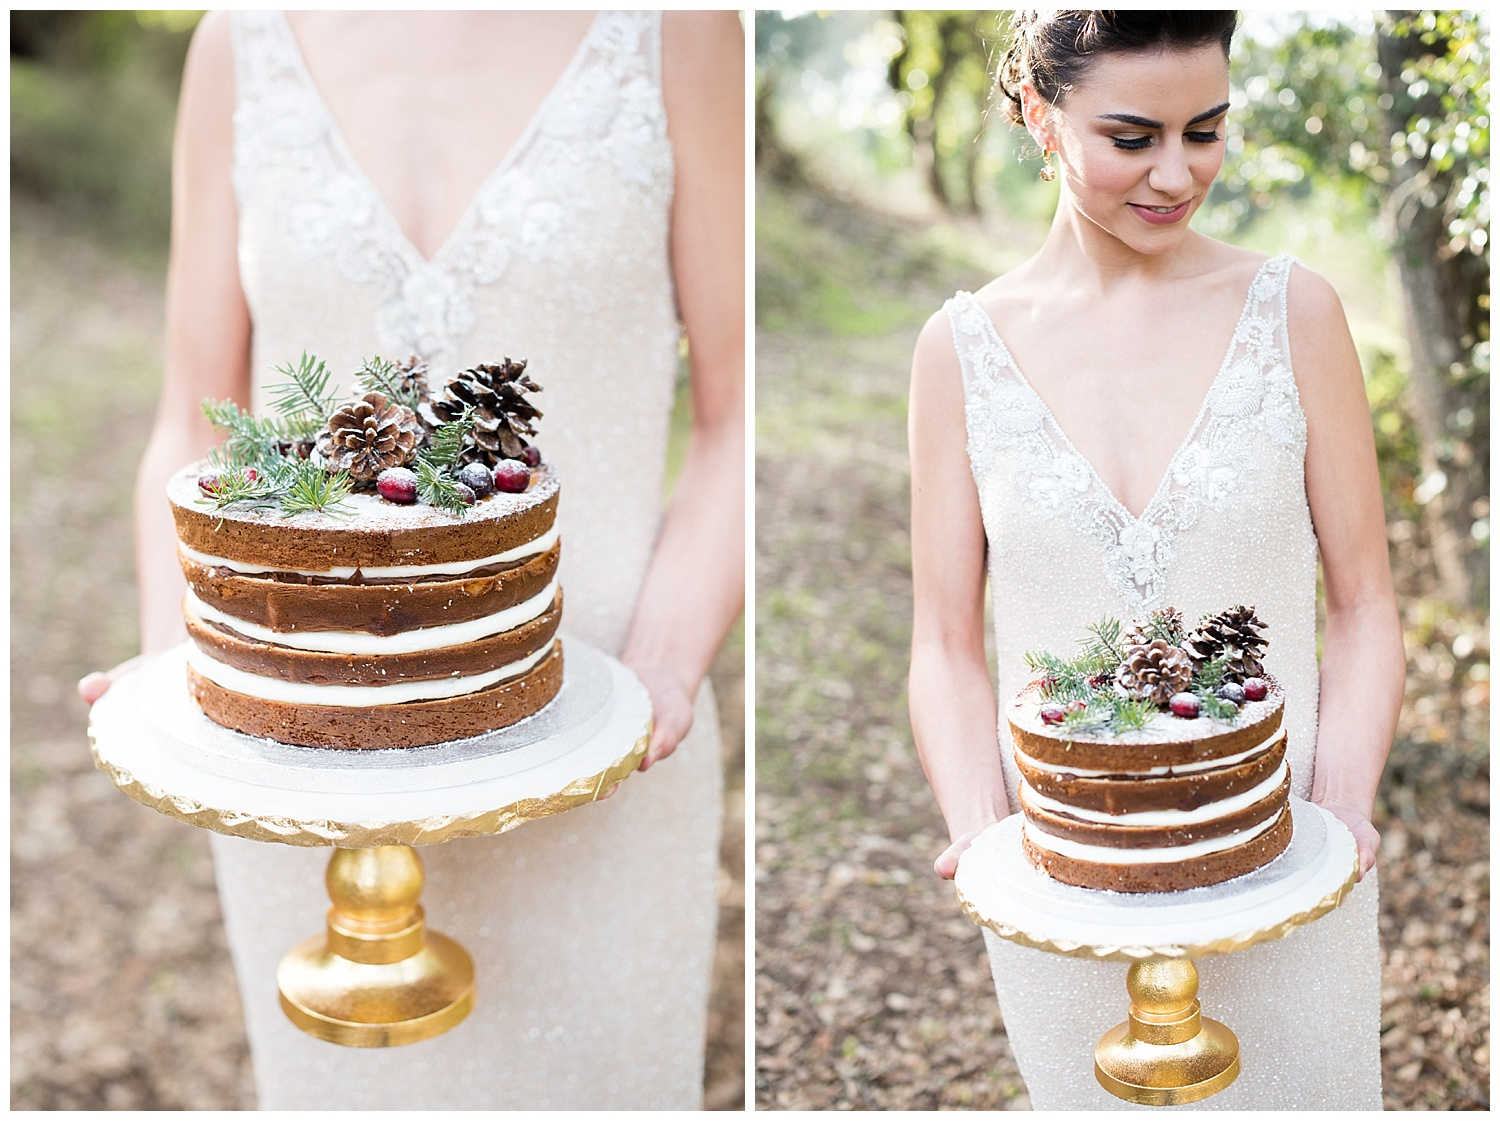 winter-wedding-cake-forest-bride.jpg